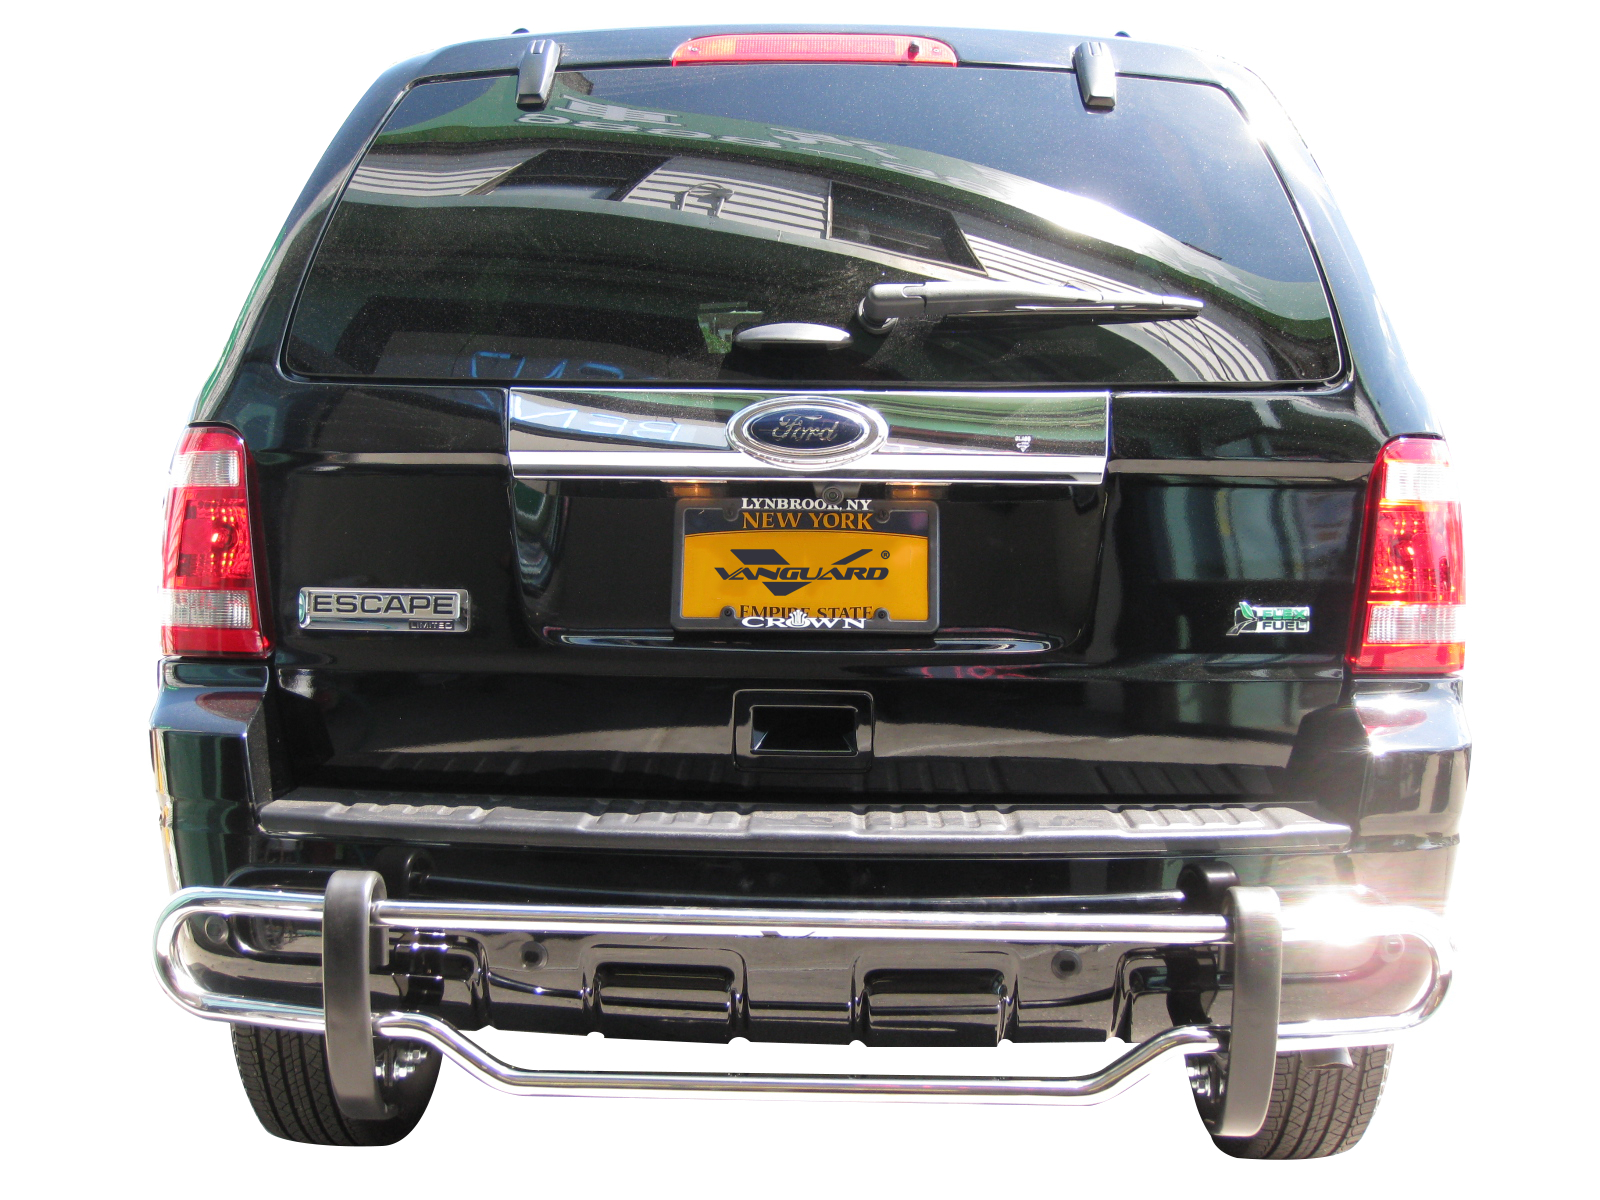 VGRBG-0544SS Stainless Steel Double Tube Style Rear Bumper Guard